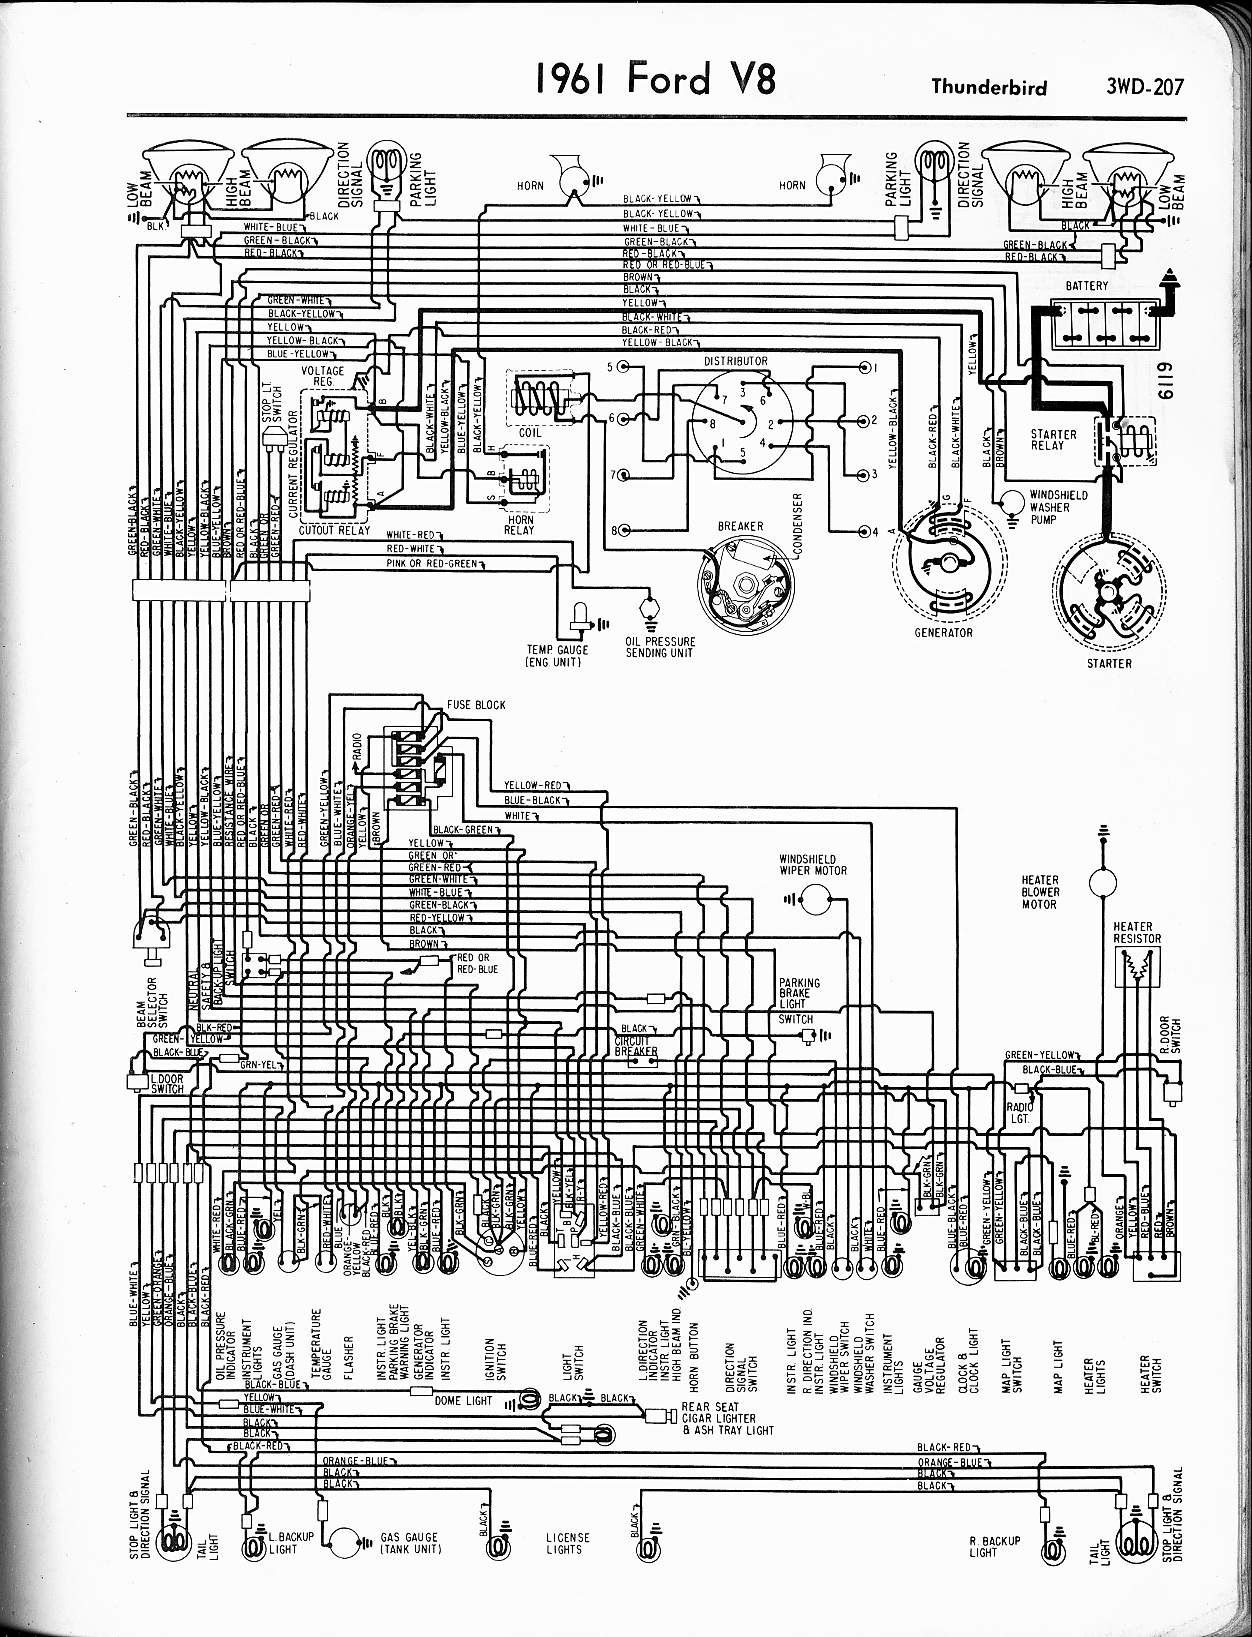 1946 Ford Truck Wiring Harness | Schematic Diagram  Ford Wiring Harness on 1930 model a wiring harness, 1949 dodge wiring harness, 1965 corvette wiring harness, 1955 chevy wiring harness, 1947 ford wiring harness, 1940 ford wiring harness, 1957 ford wiring harness, 1946 ford truck wiring diagram, 1948 cadillac wiring harness, 1956 ford wiring harness, 1941 buick wiring harness, 1955 ford wiring harness, 1970 chevelle wiring harness, 1941 ford wiring harness, 1969 nova wiring harness, 1949 lincoln wiring harness, chevy truck wiring harness, 1950 ford wiring harness, 1951 ford wiring harness, 1954 ford wiring harness,